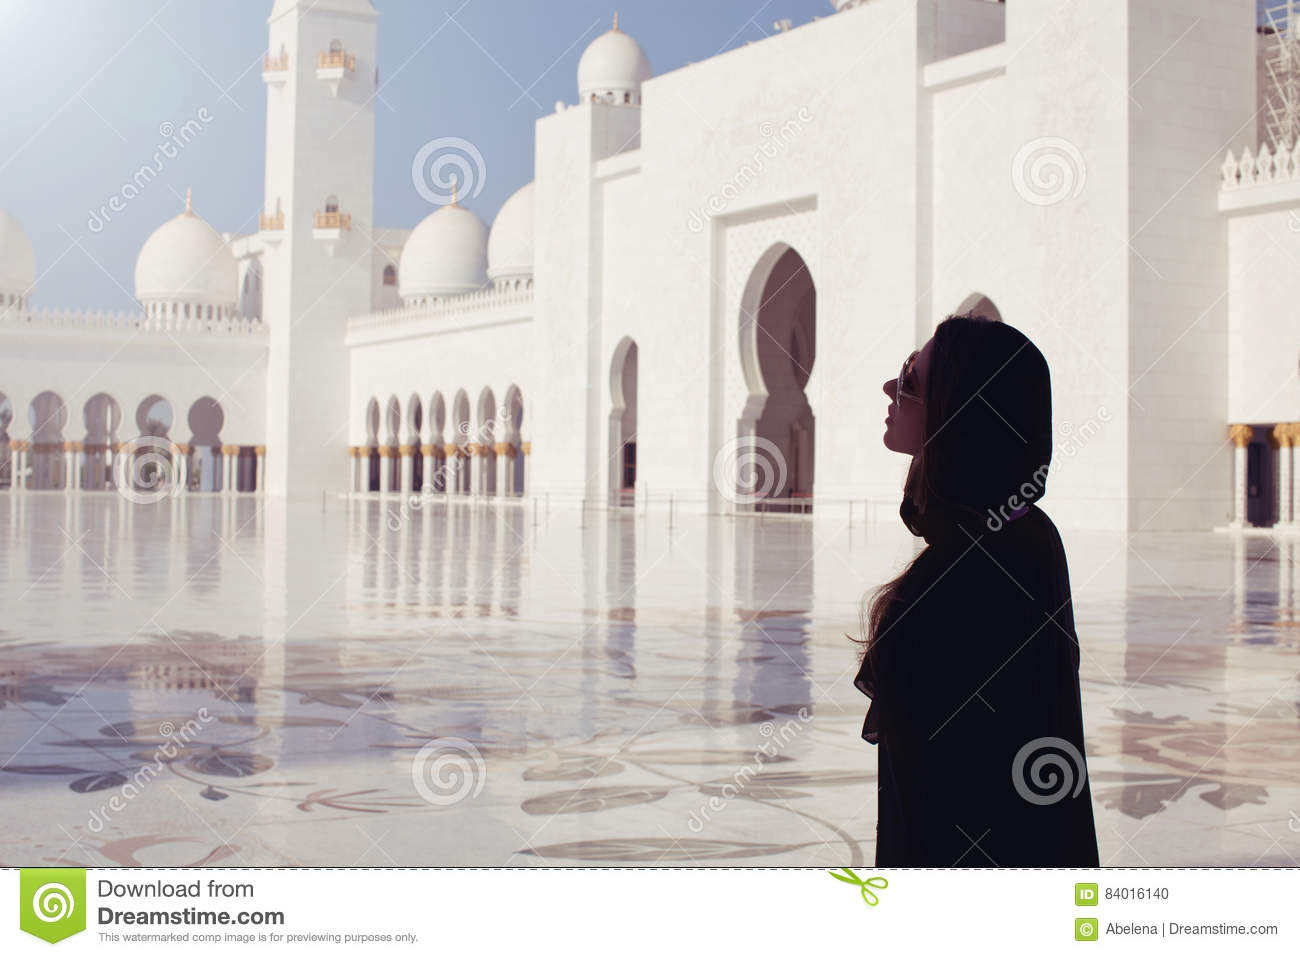 Vrouw in beroemd Sheikh Zayed Grand Mosque